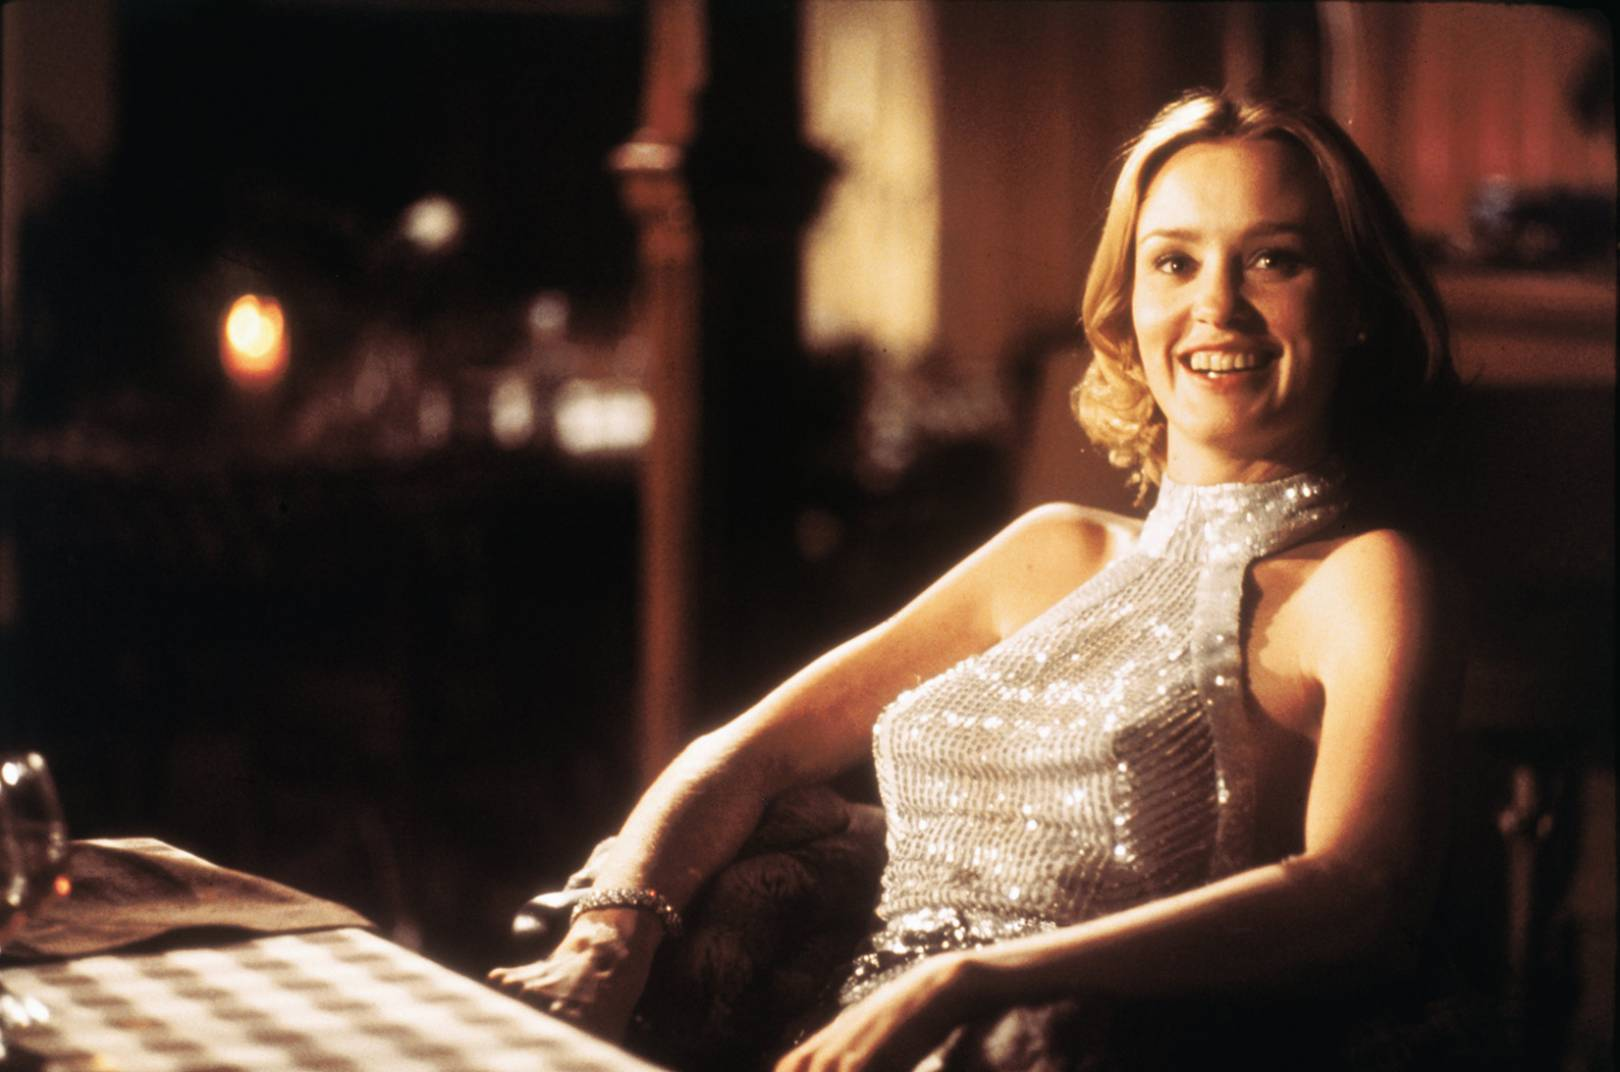 King kong jessica lange nude sounds tempting